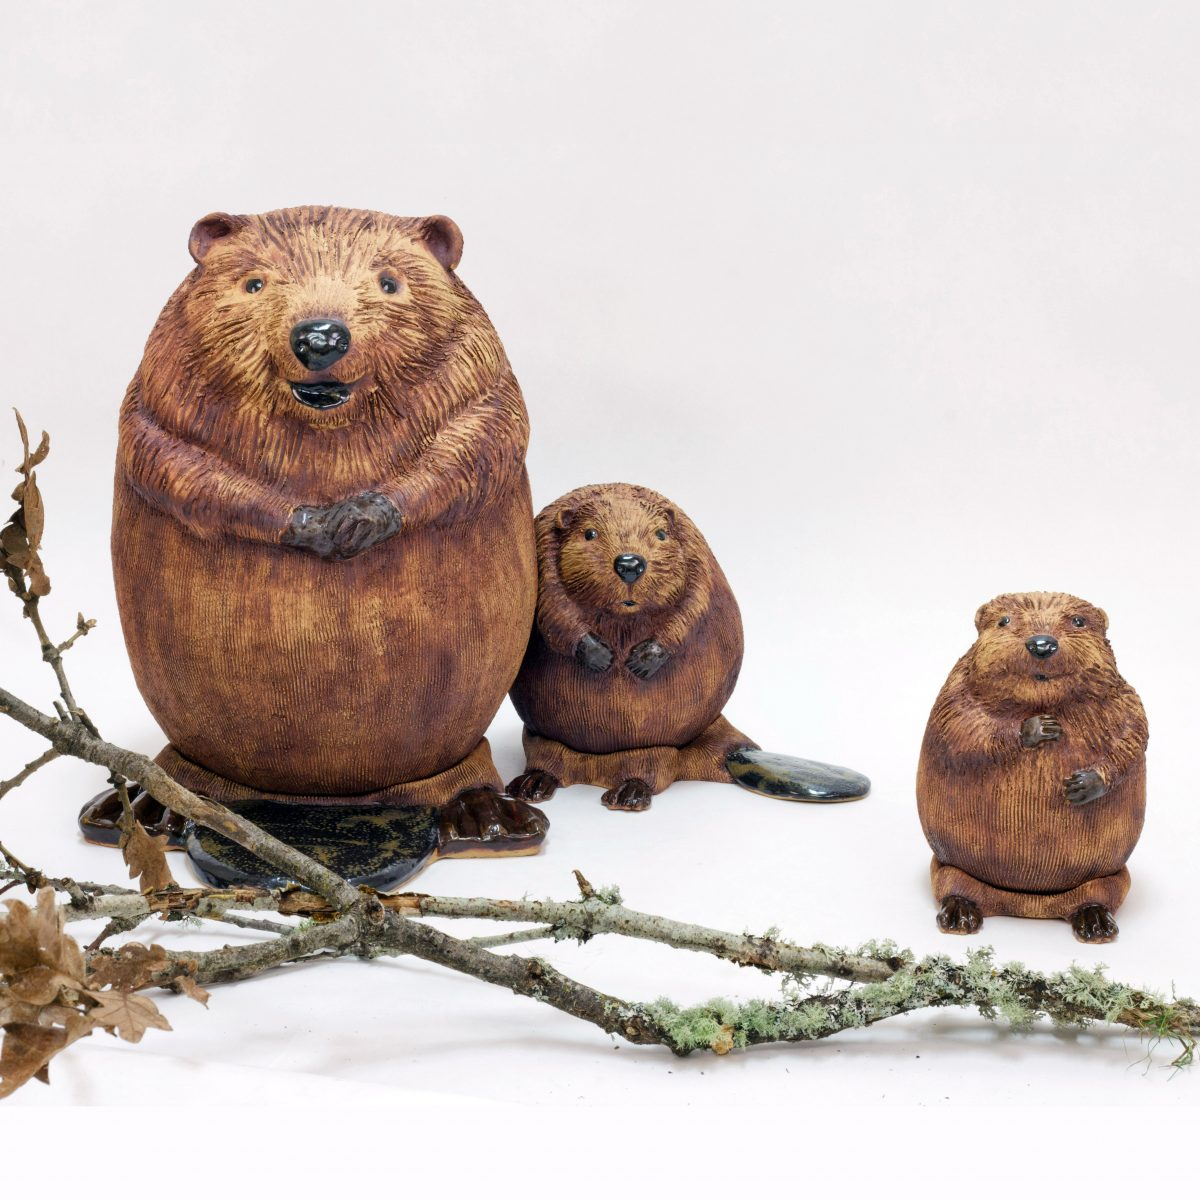 Beaver Tales traveling art exhibit